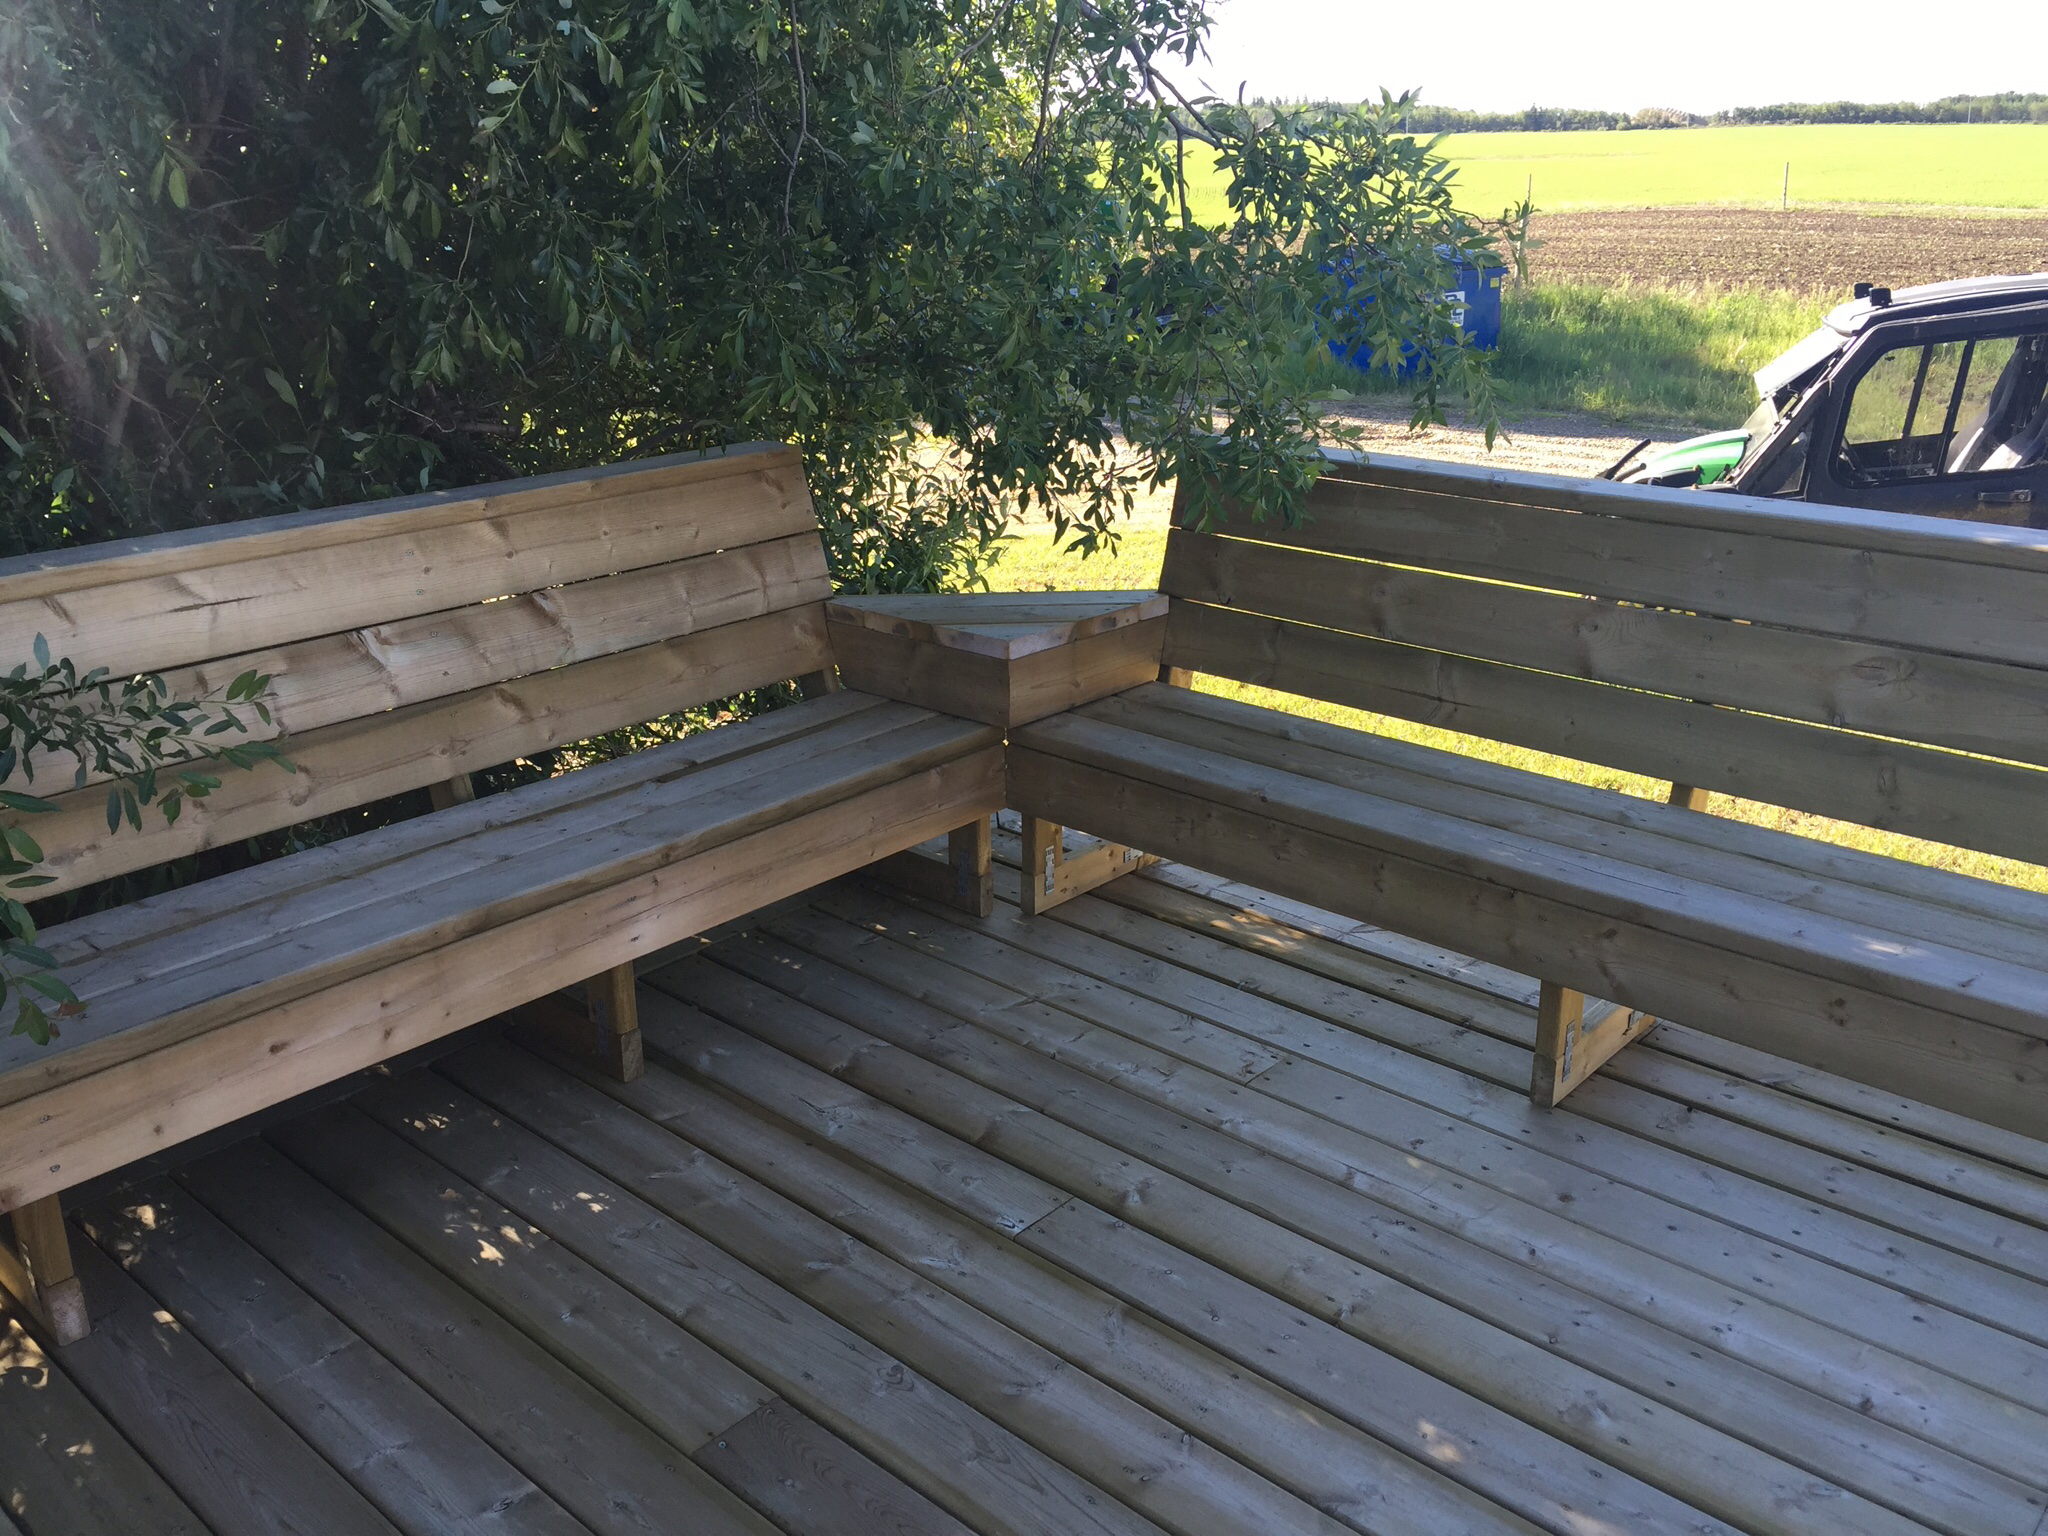 Seats on deck are a convenient alternative to railing.